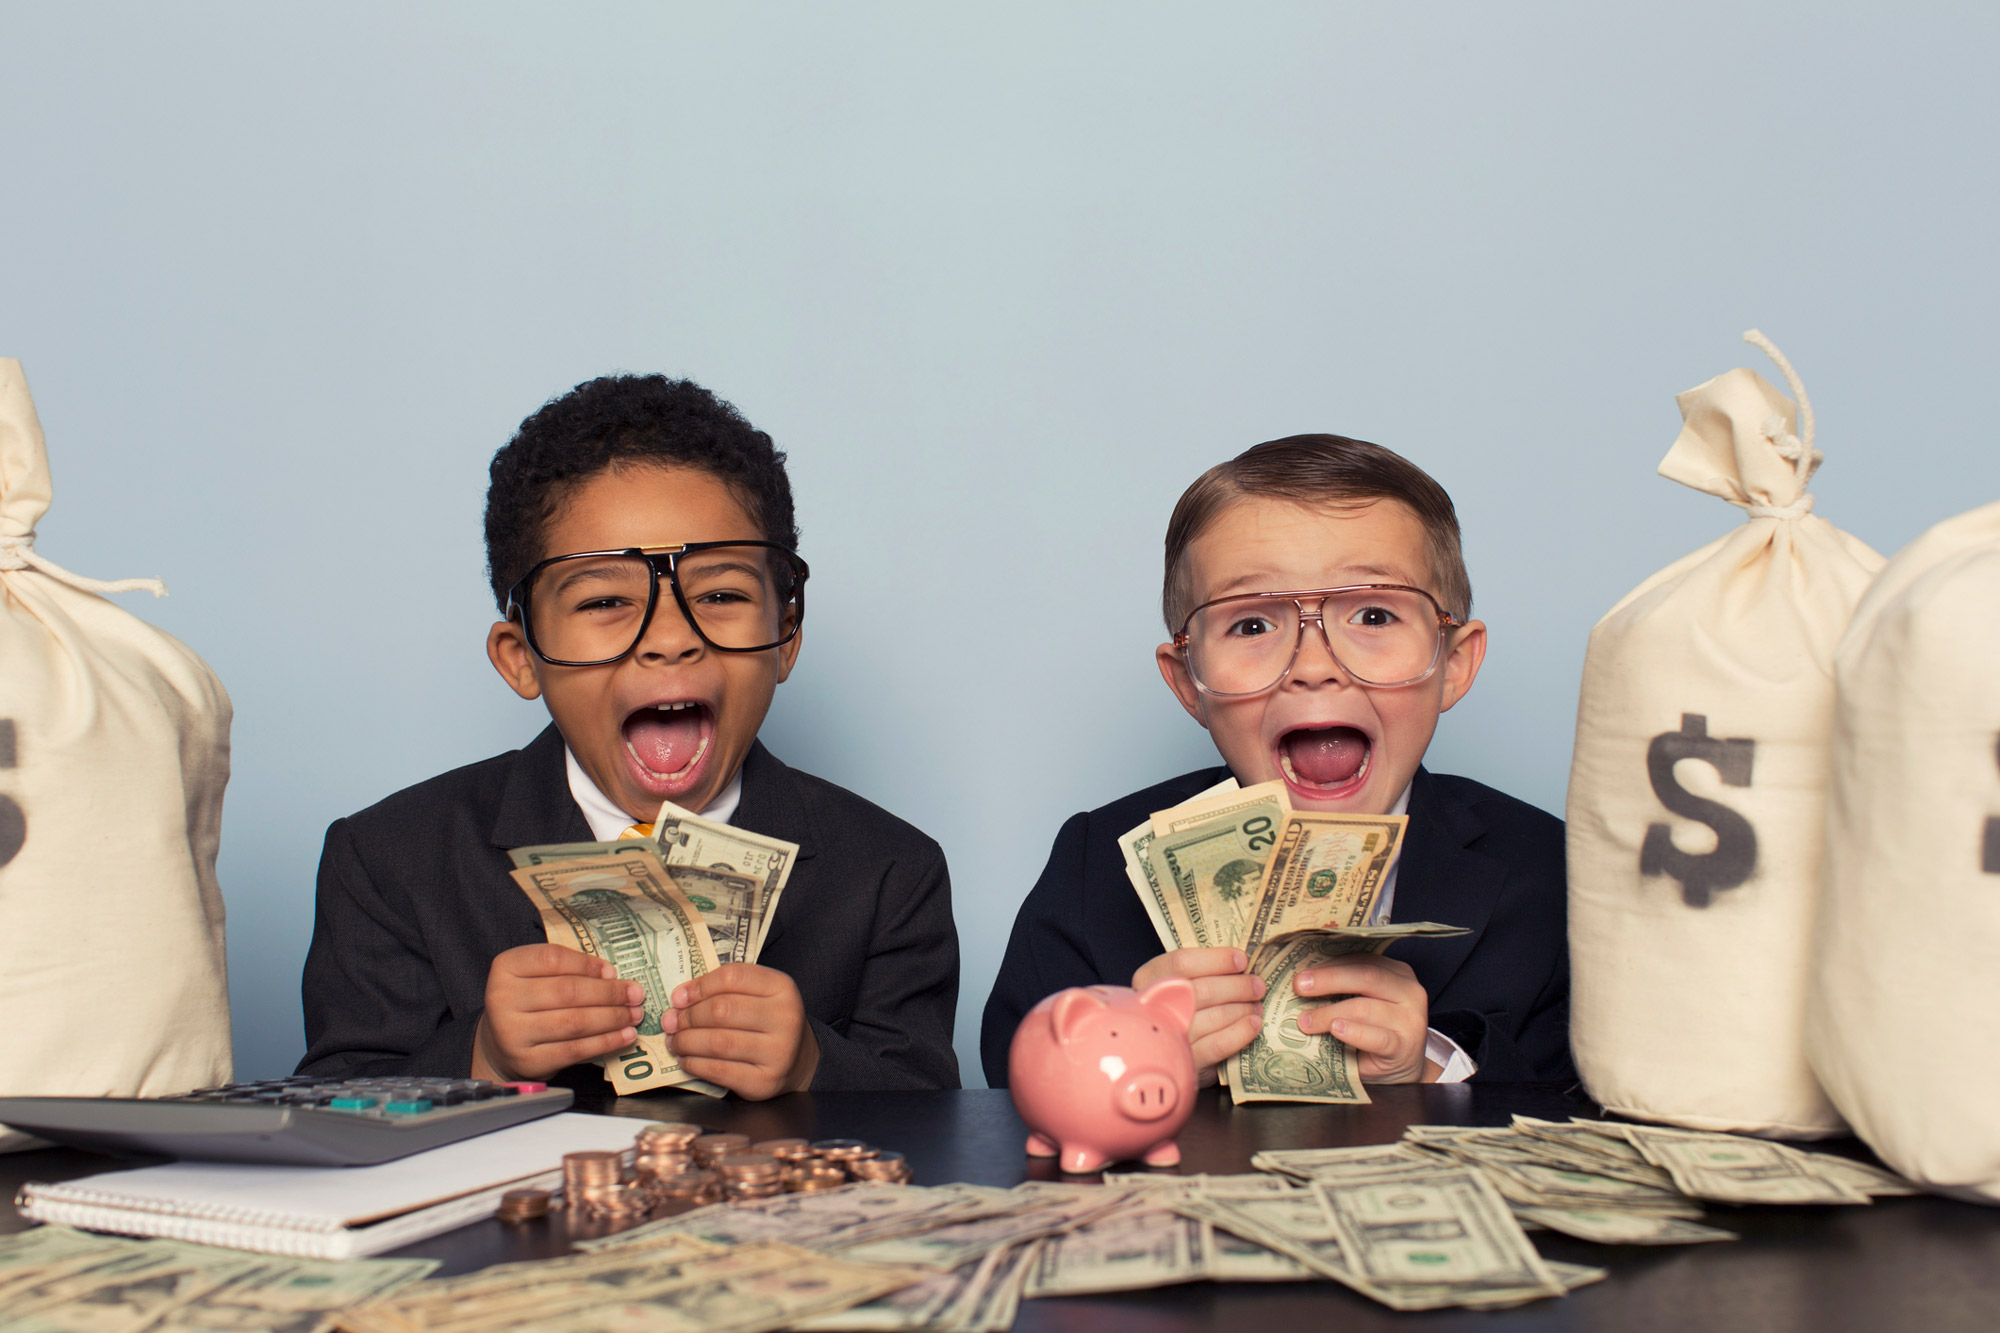 two kids surrounded by money